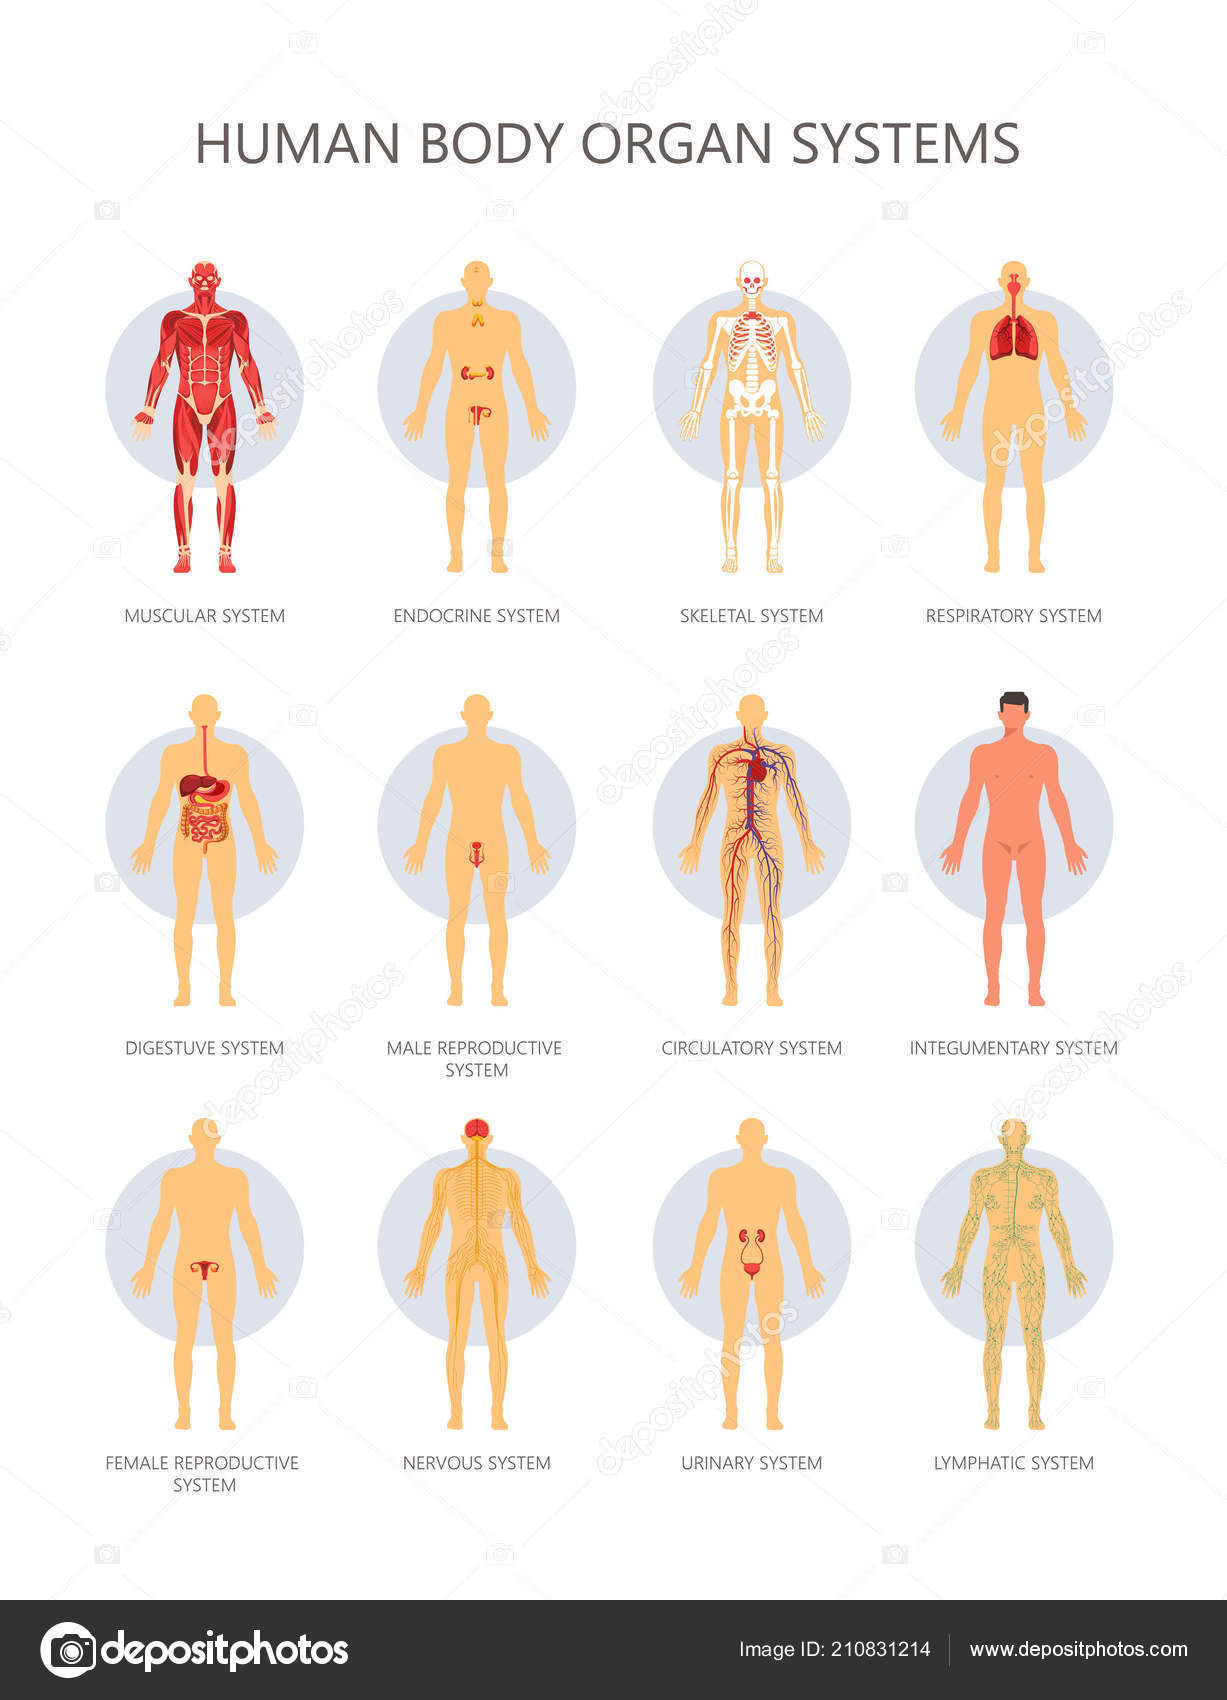 Human Body Biological Organ Systems Medical Infographic Vector